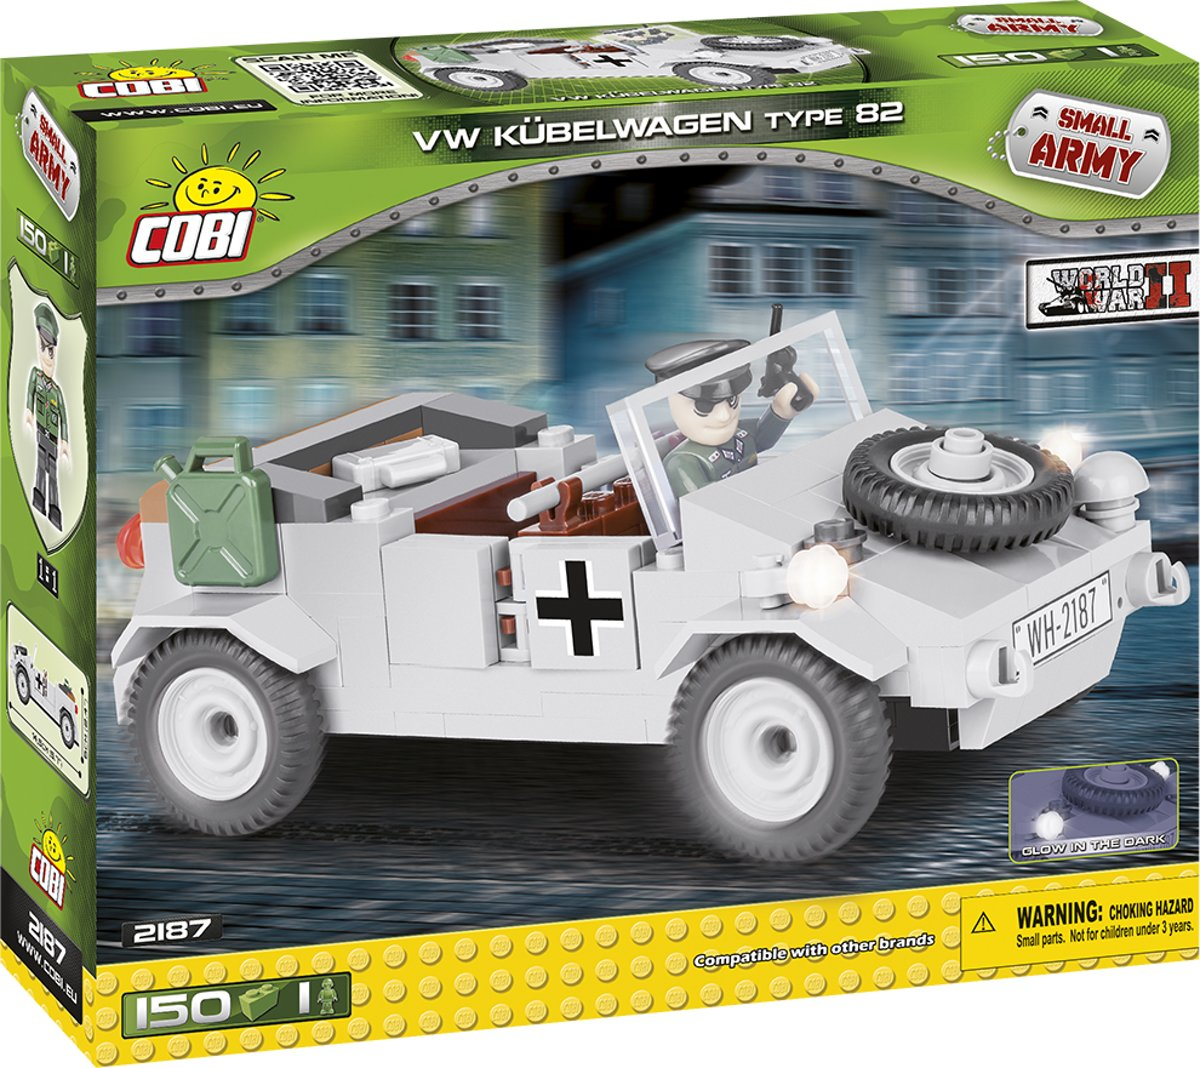 Cobi WW2 2187 - VW Kubelwagen Type 82